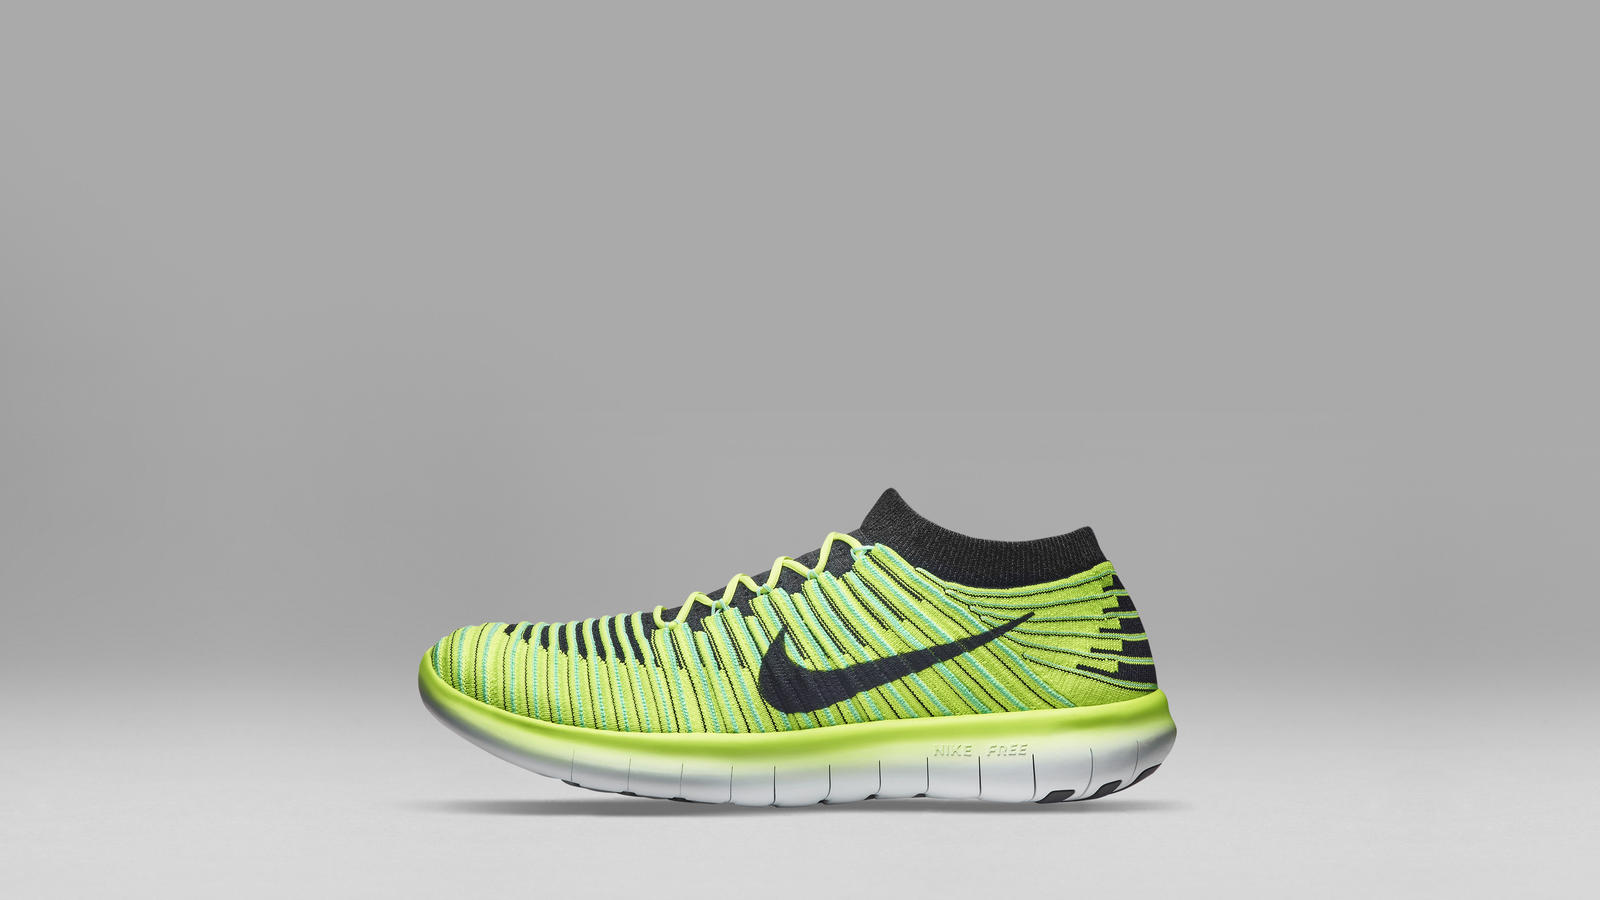 2 NIKE FREE RN MOTION FLYKNIT 30 Grey Women Men Top Deals